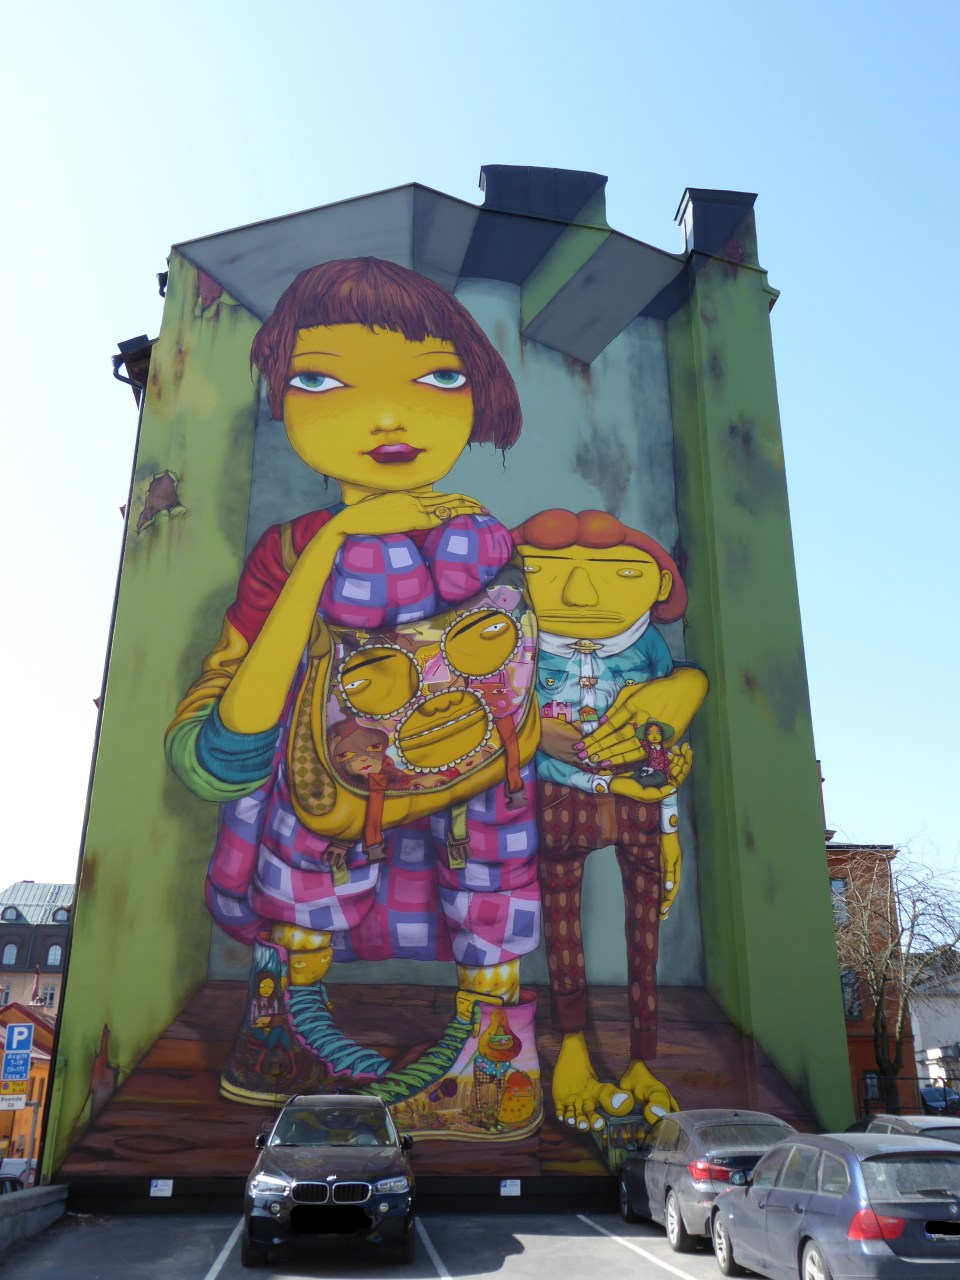 Mural in Södermalm, Stockholm. Featuring people with yellow skin and a green background. On a large building side, with cars parked in front.